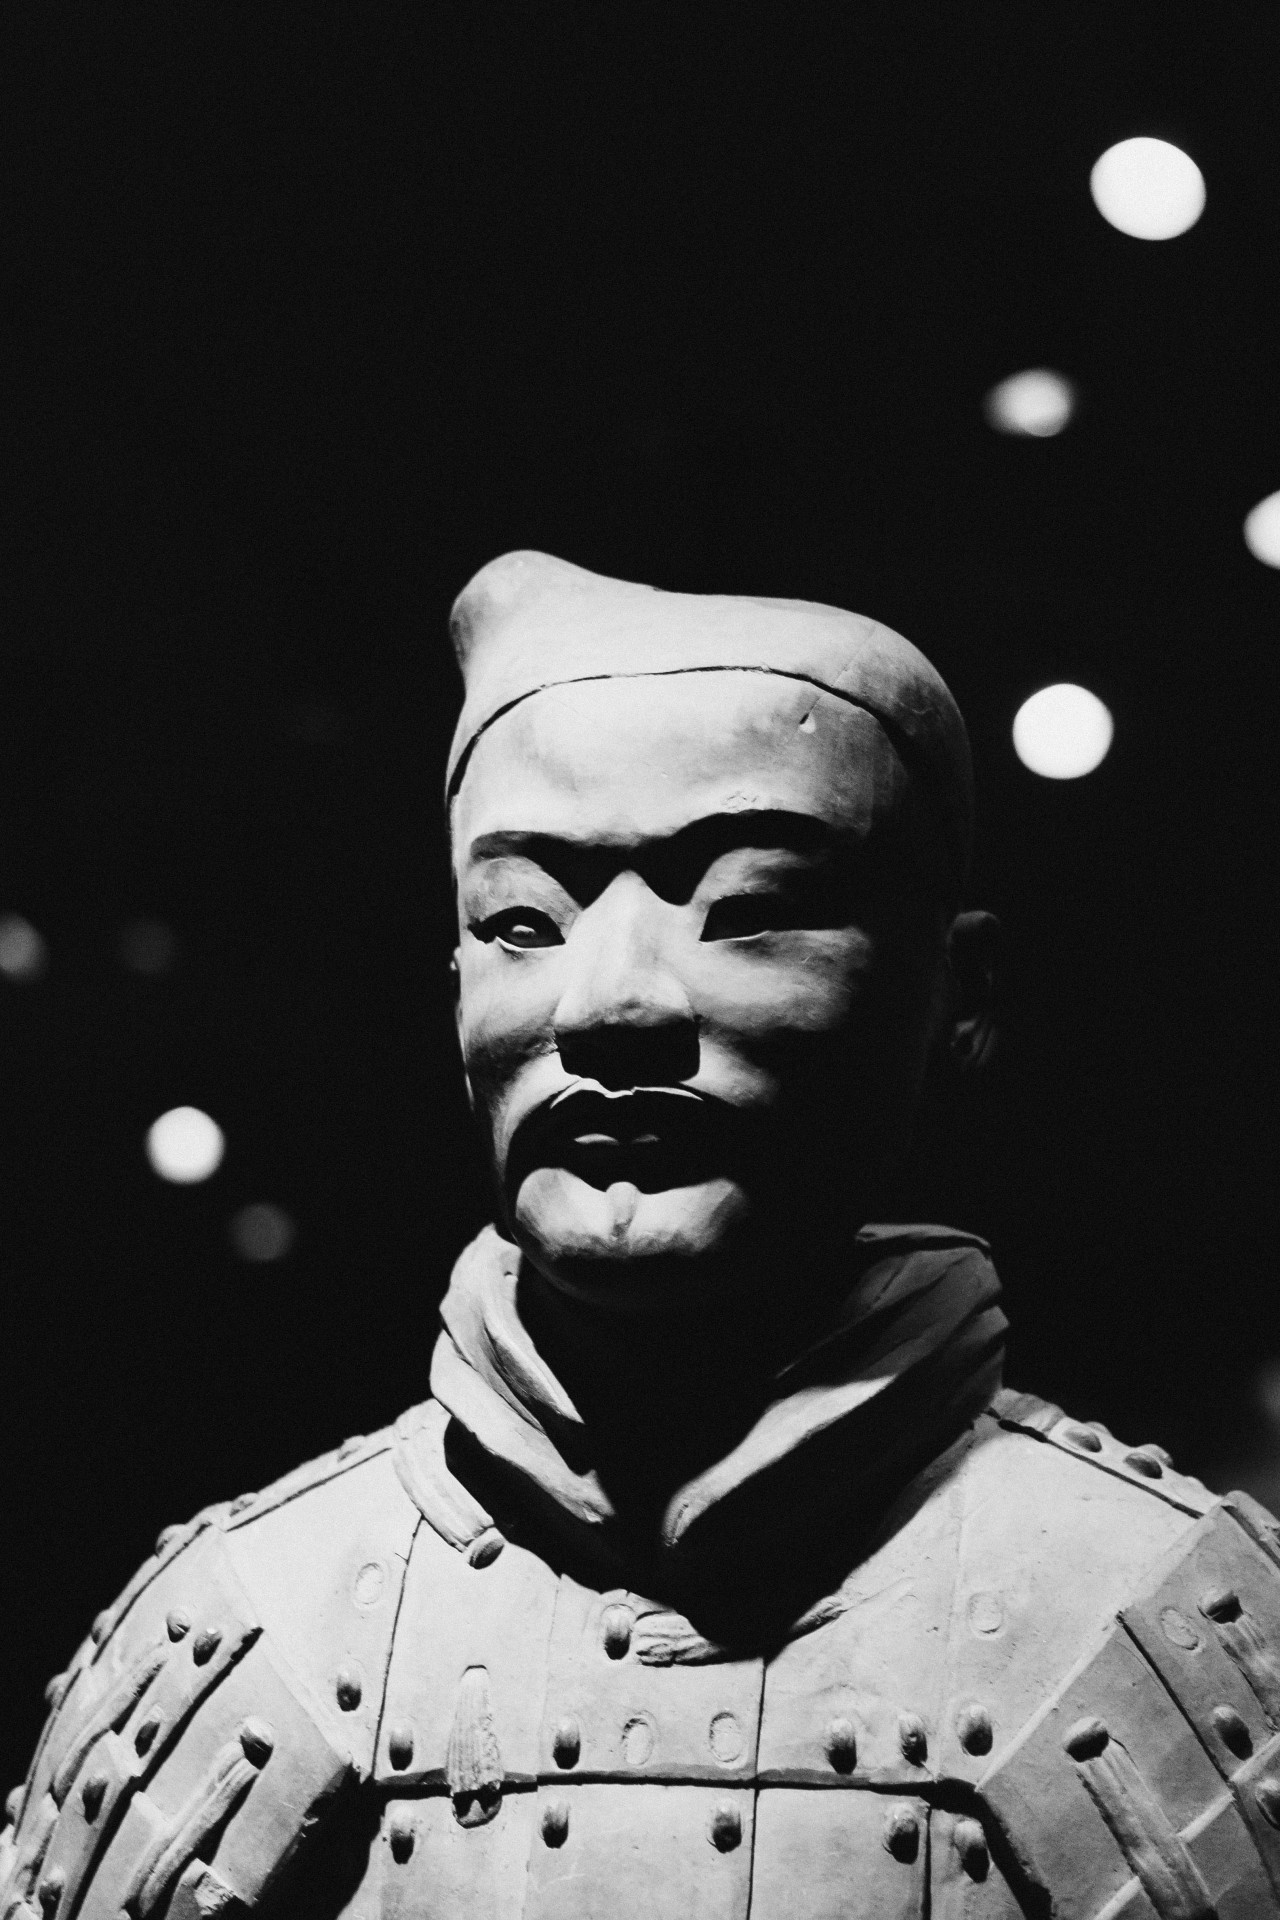 gheedsgreed:  Terracotta Warriors exhibit at the Asian Art Museum in San Francisco  Whoa, we've seen a ton of photos from the public of the warriors but not so many stark black and white ones. Our exhibition is on view until May 27. We recommend coming on a Thurs night when you can see this incredible exhibition for just $10.